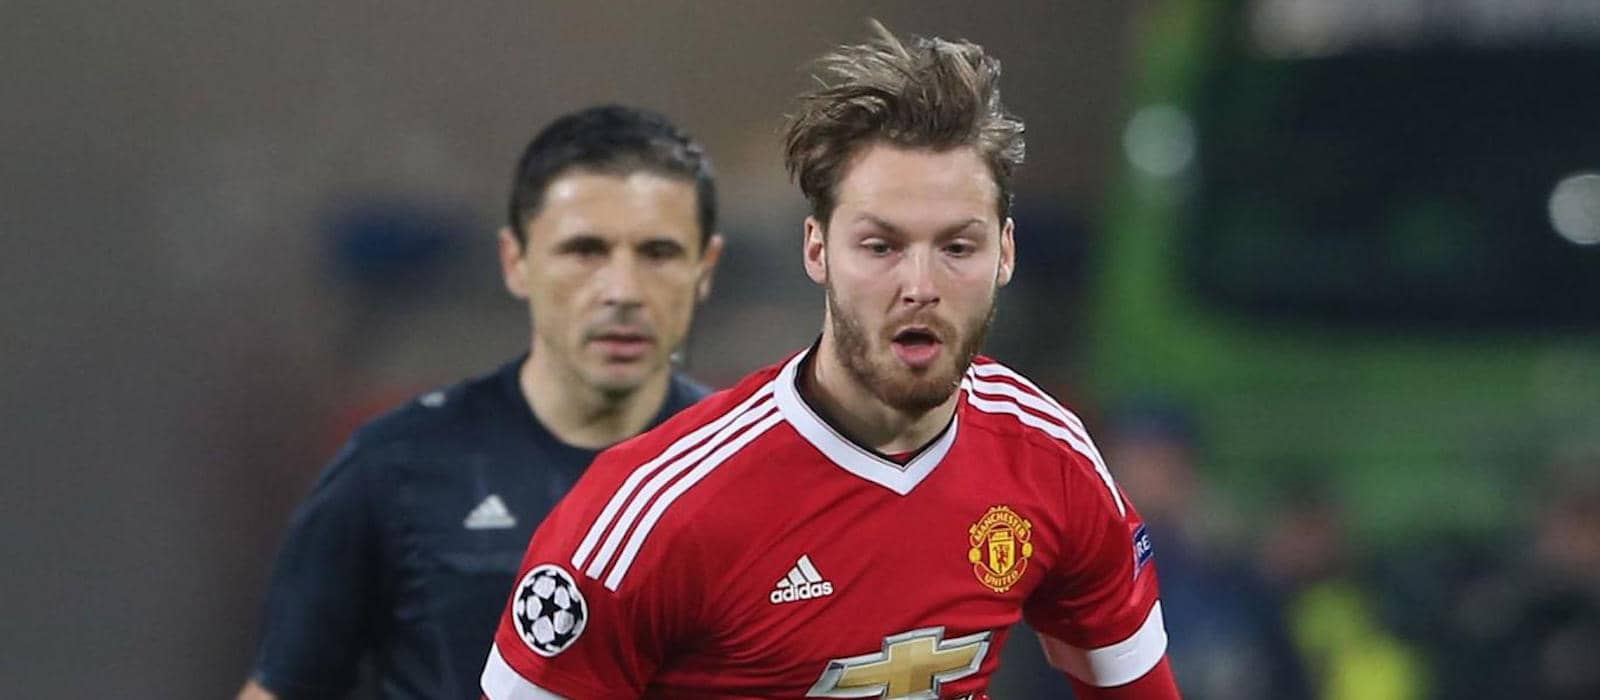 Wigan Athletic sign former Manchester United midfielder Nick Powell